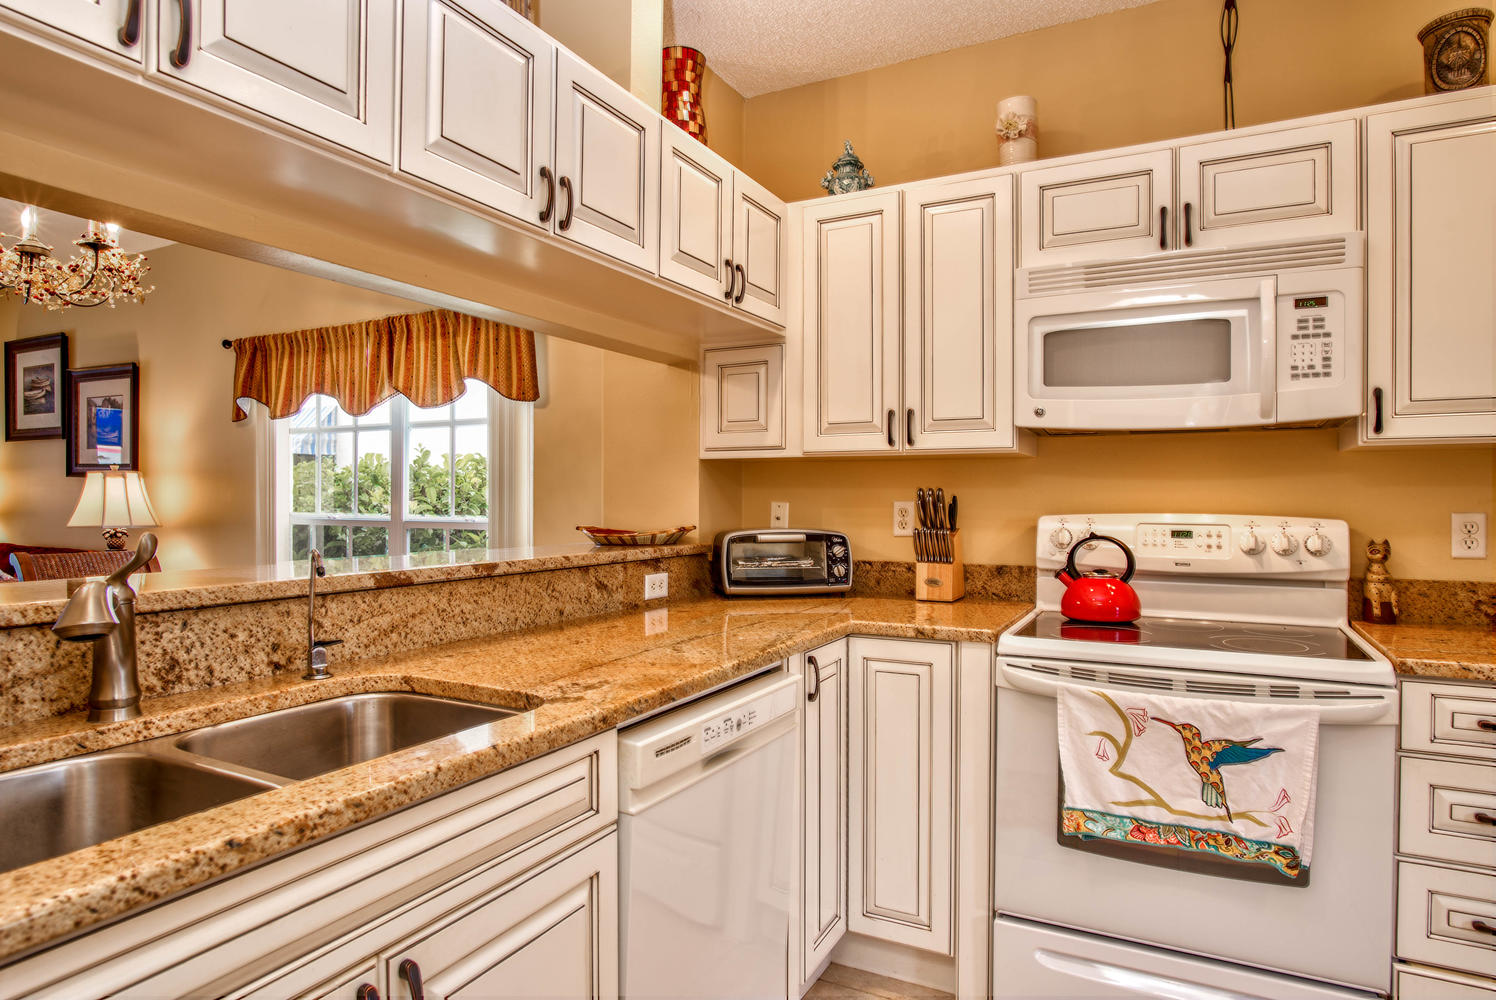 11525 Shipwatch Dr unit 1046-large-018-6-Kitchen-1496x1000-72dpi